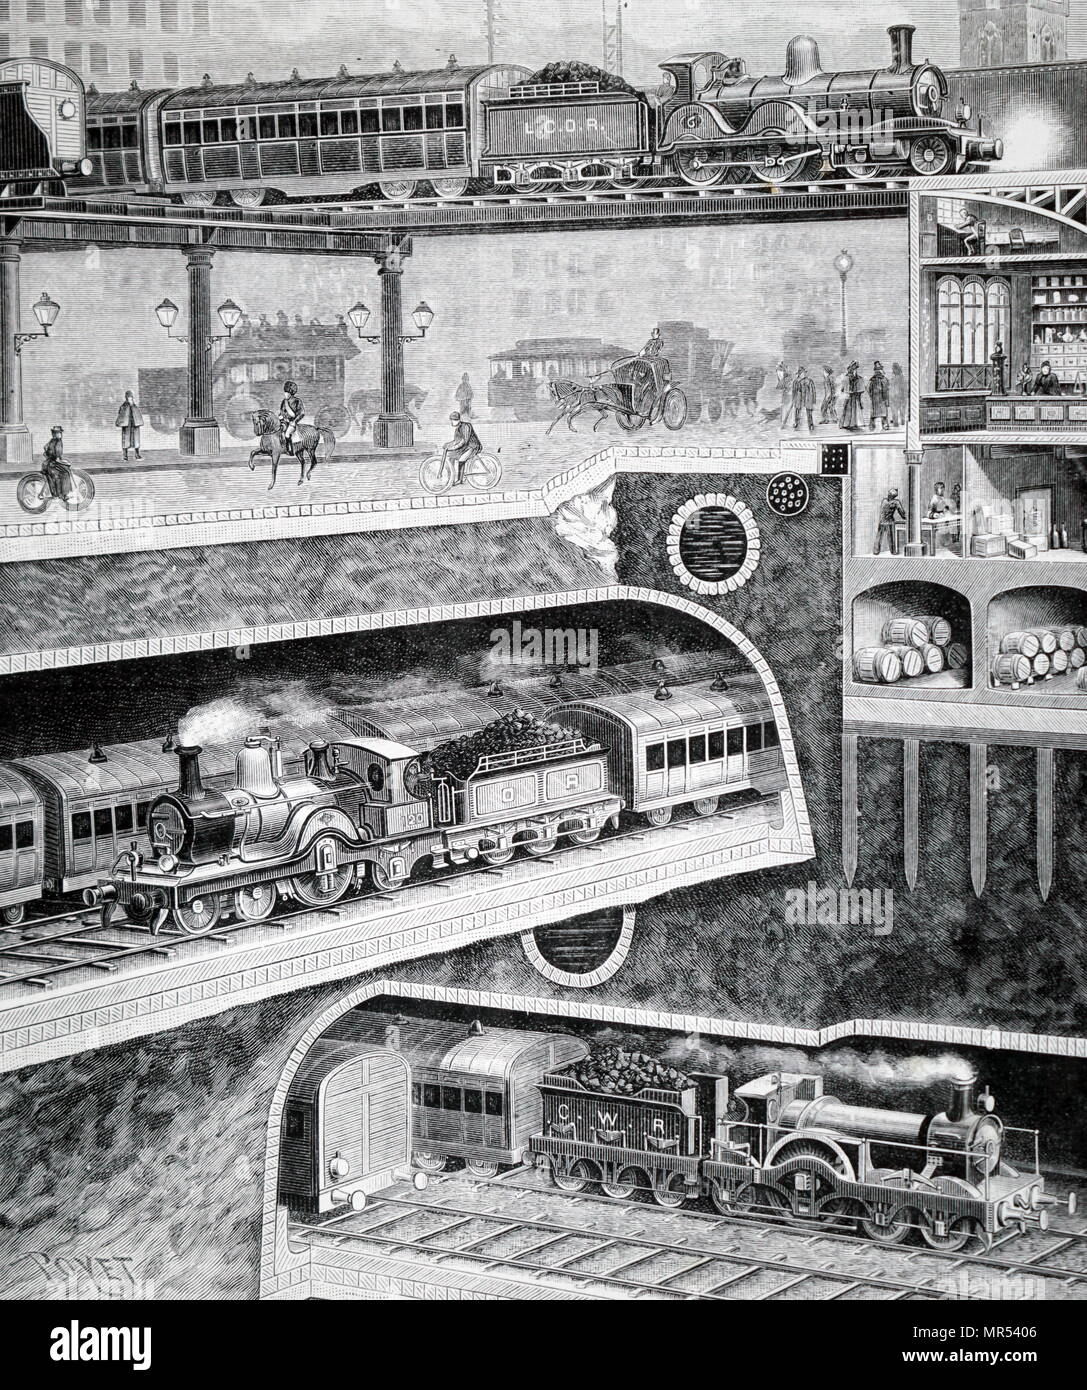 Sectional view of London's transport system at Queen Victoria Street. Top is the London, Catham & Dover Railway. Bottom: City and Waterloo Railway. Dated 19th century - Stock Image